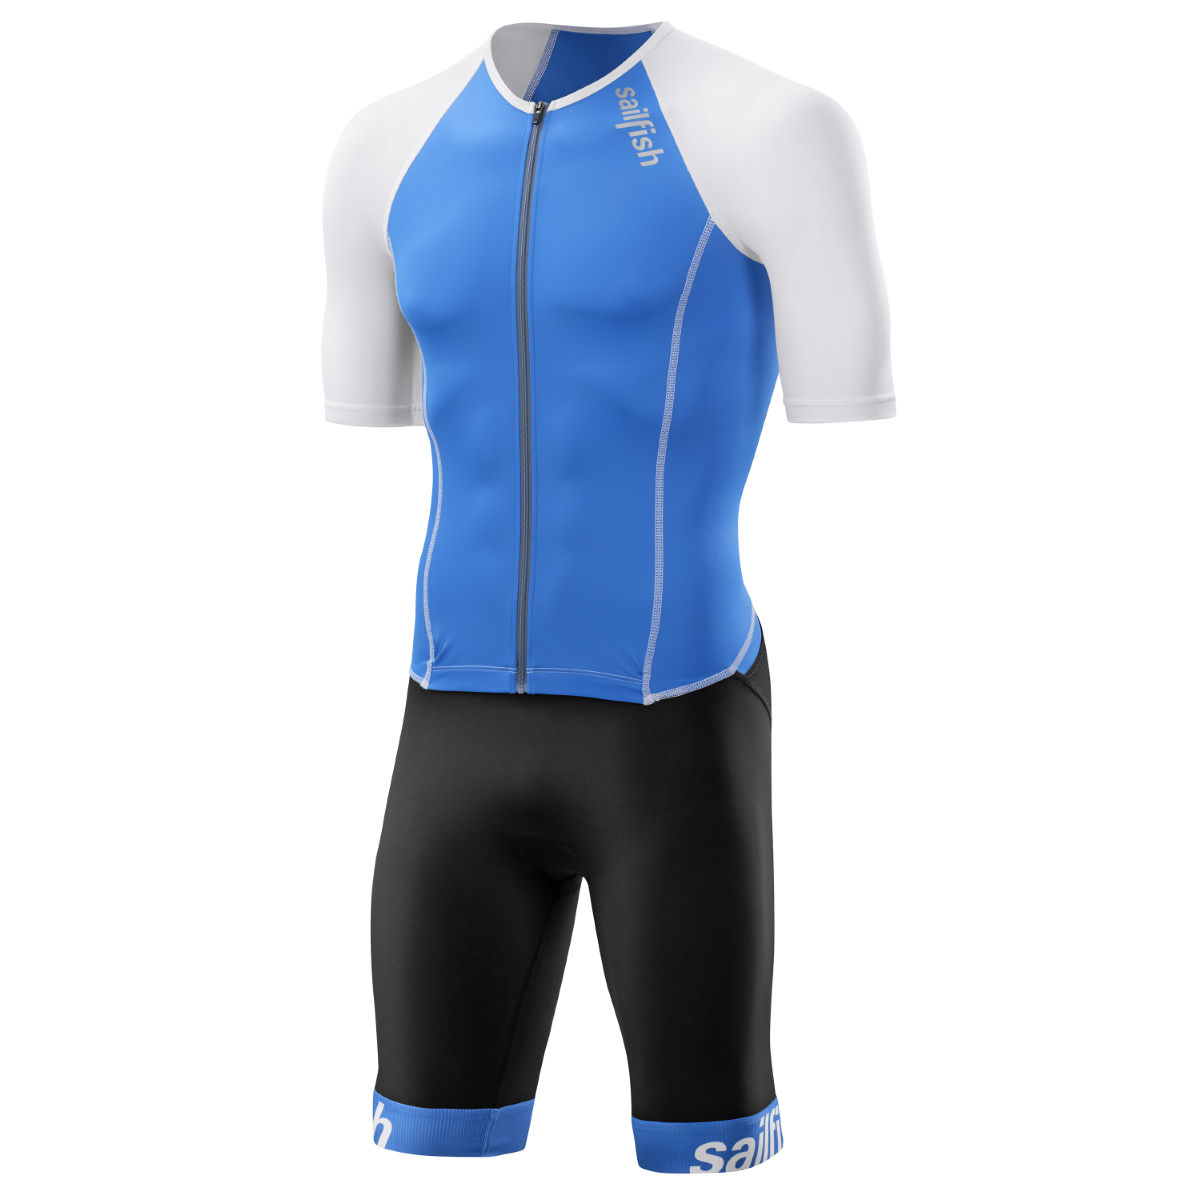 Trifonction Sailfish Aerosuit Comp - Extra Small Bleu Trifonctions